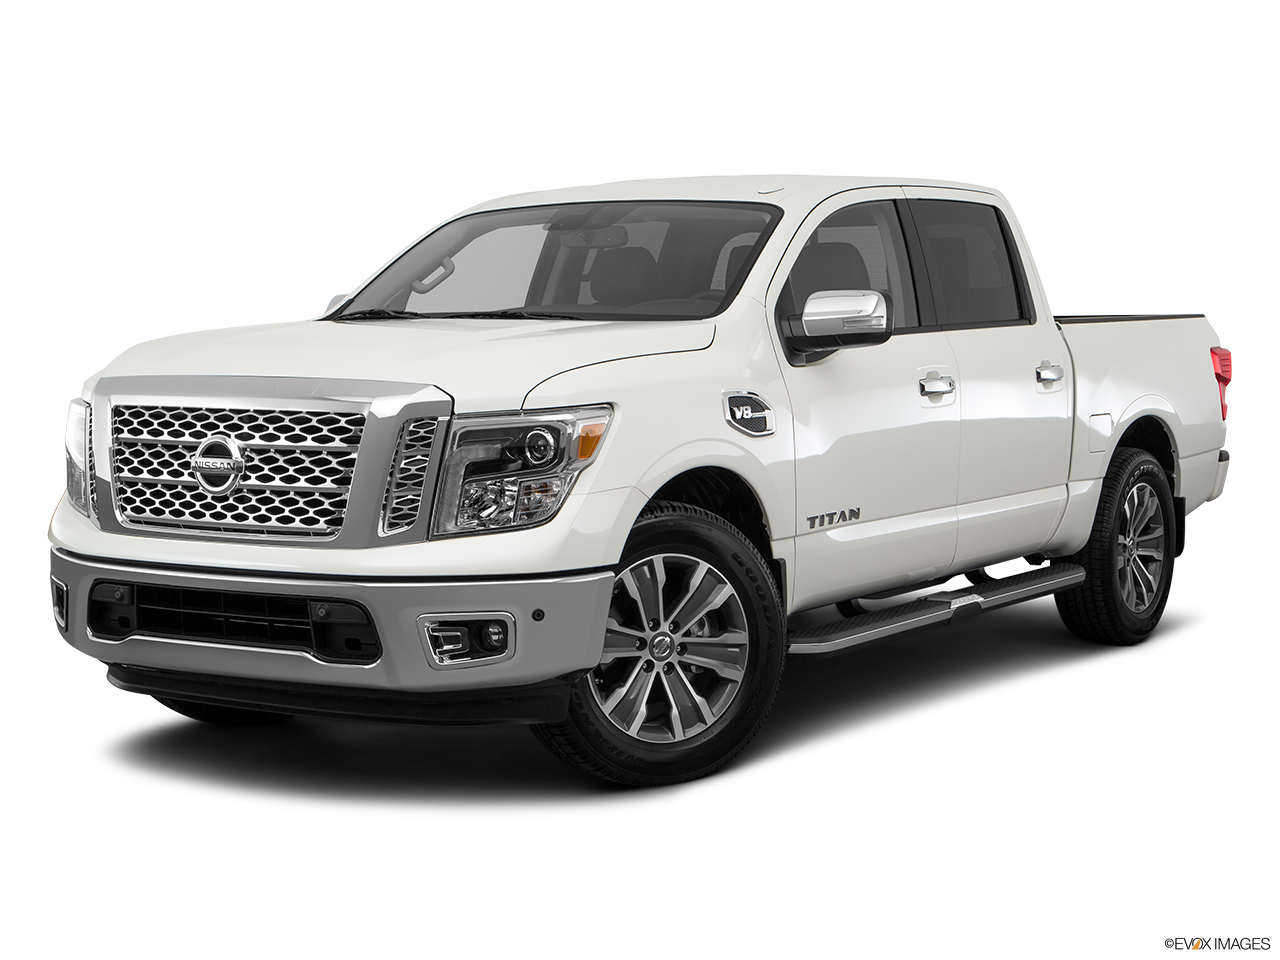 Test Drive A 2017 Nissan Titan at Empire Nissan in Ontario